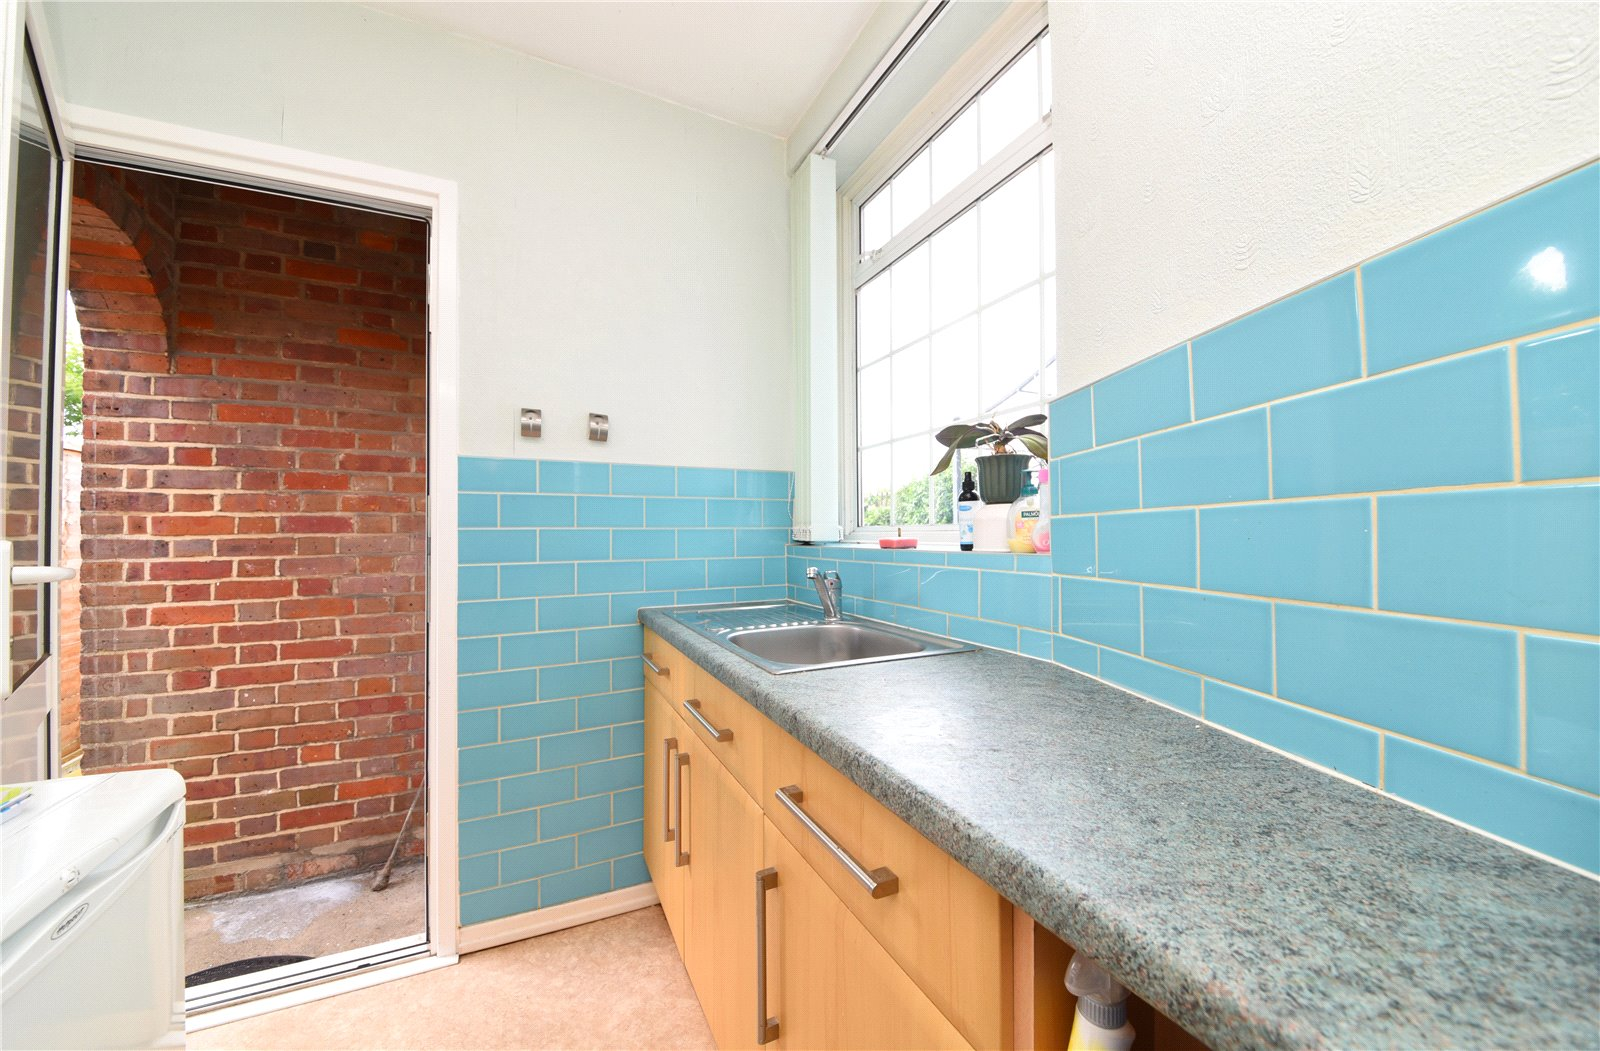 3 bed house for sale in London, N12 9ND 6